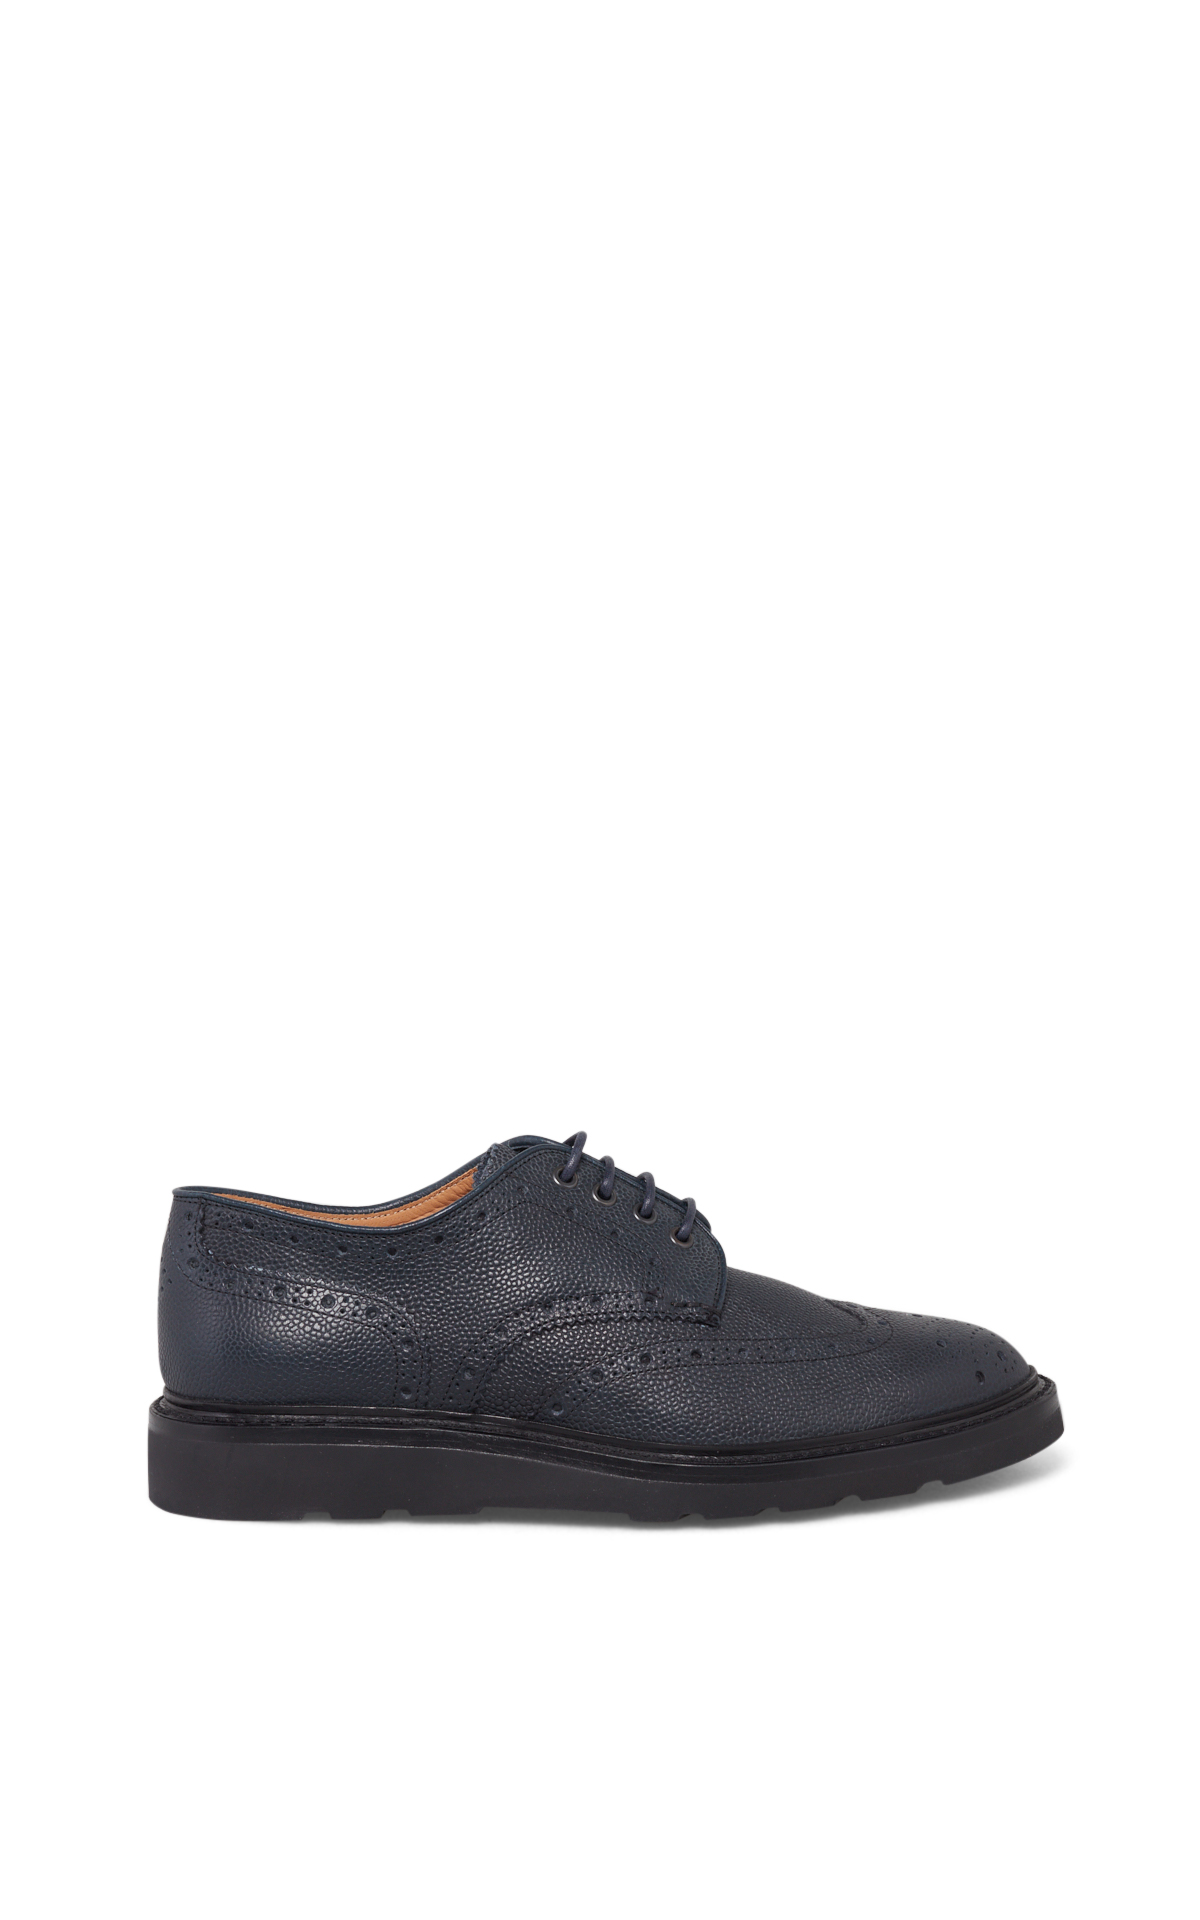 Navy Cox derby shoes*